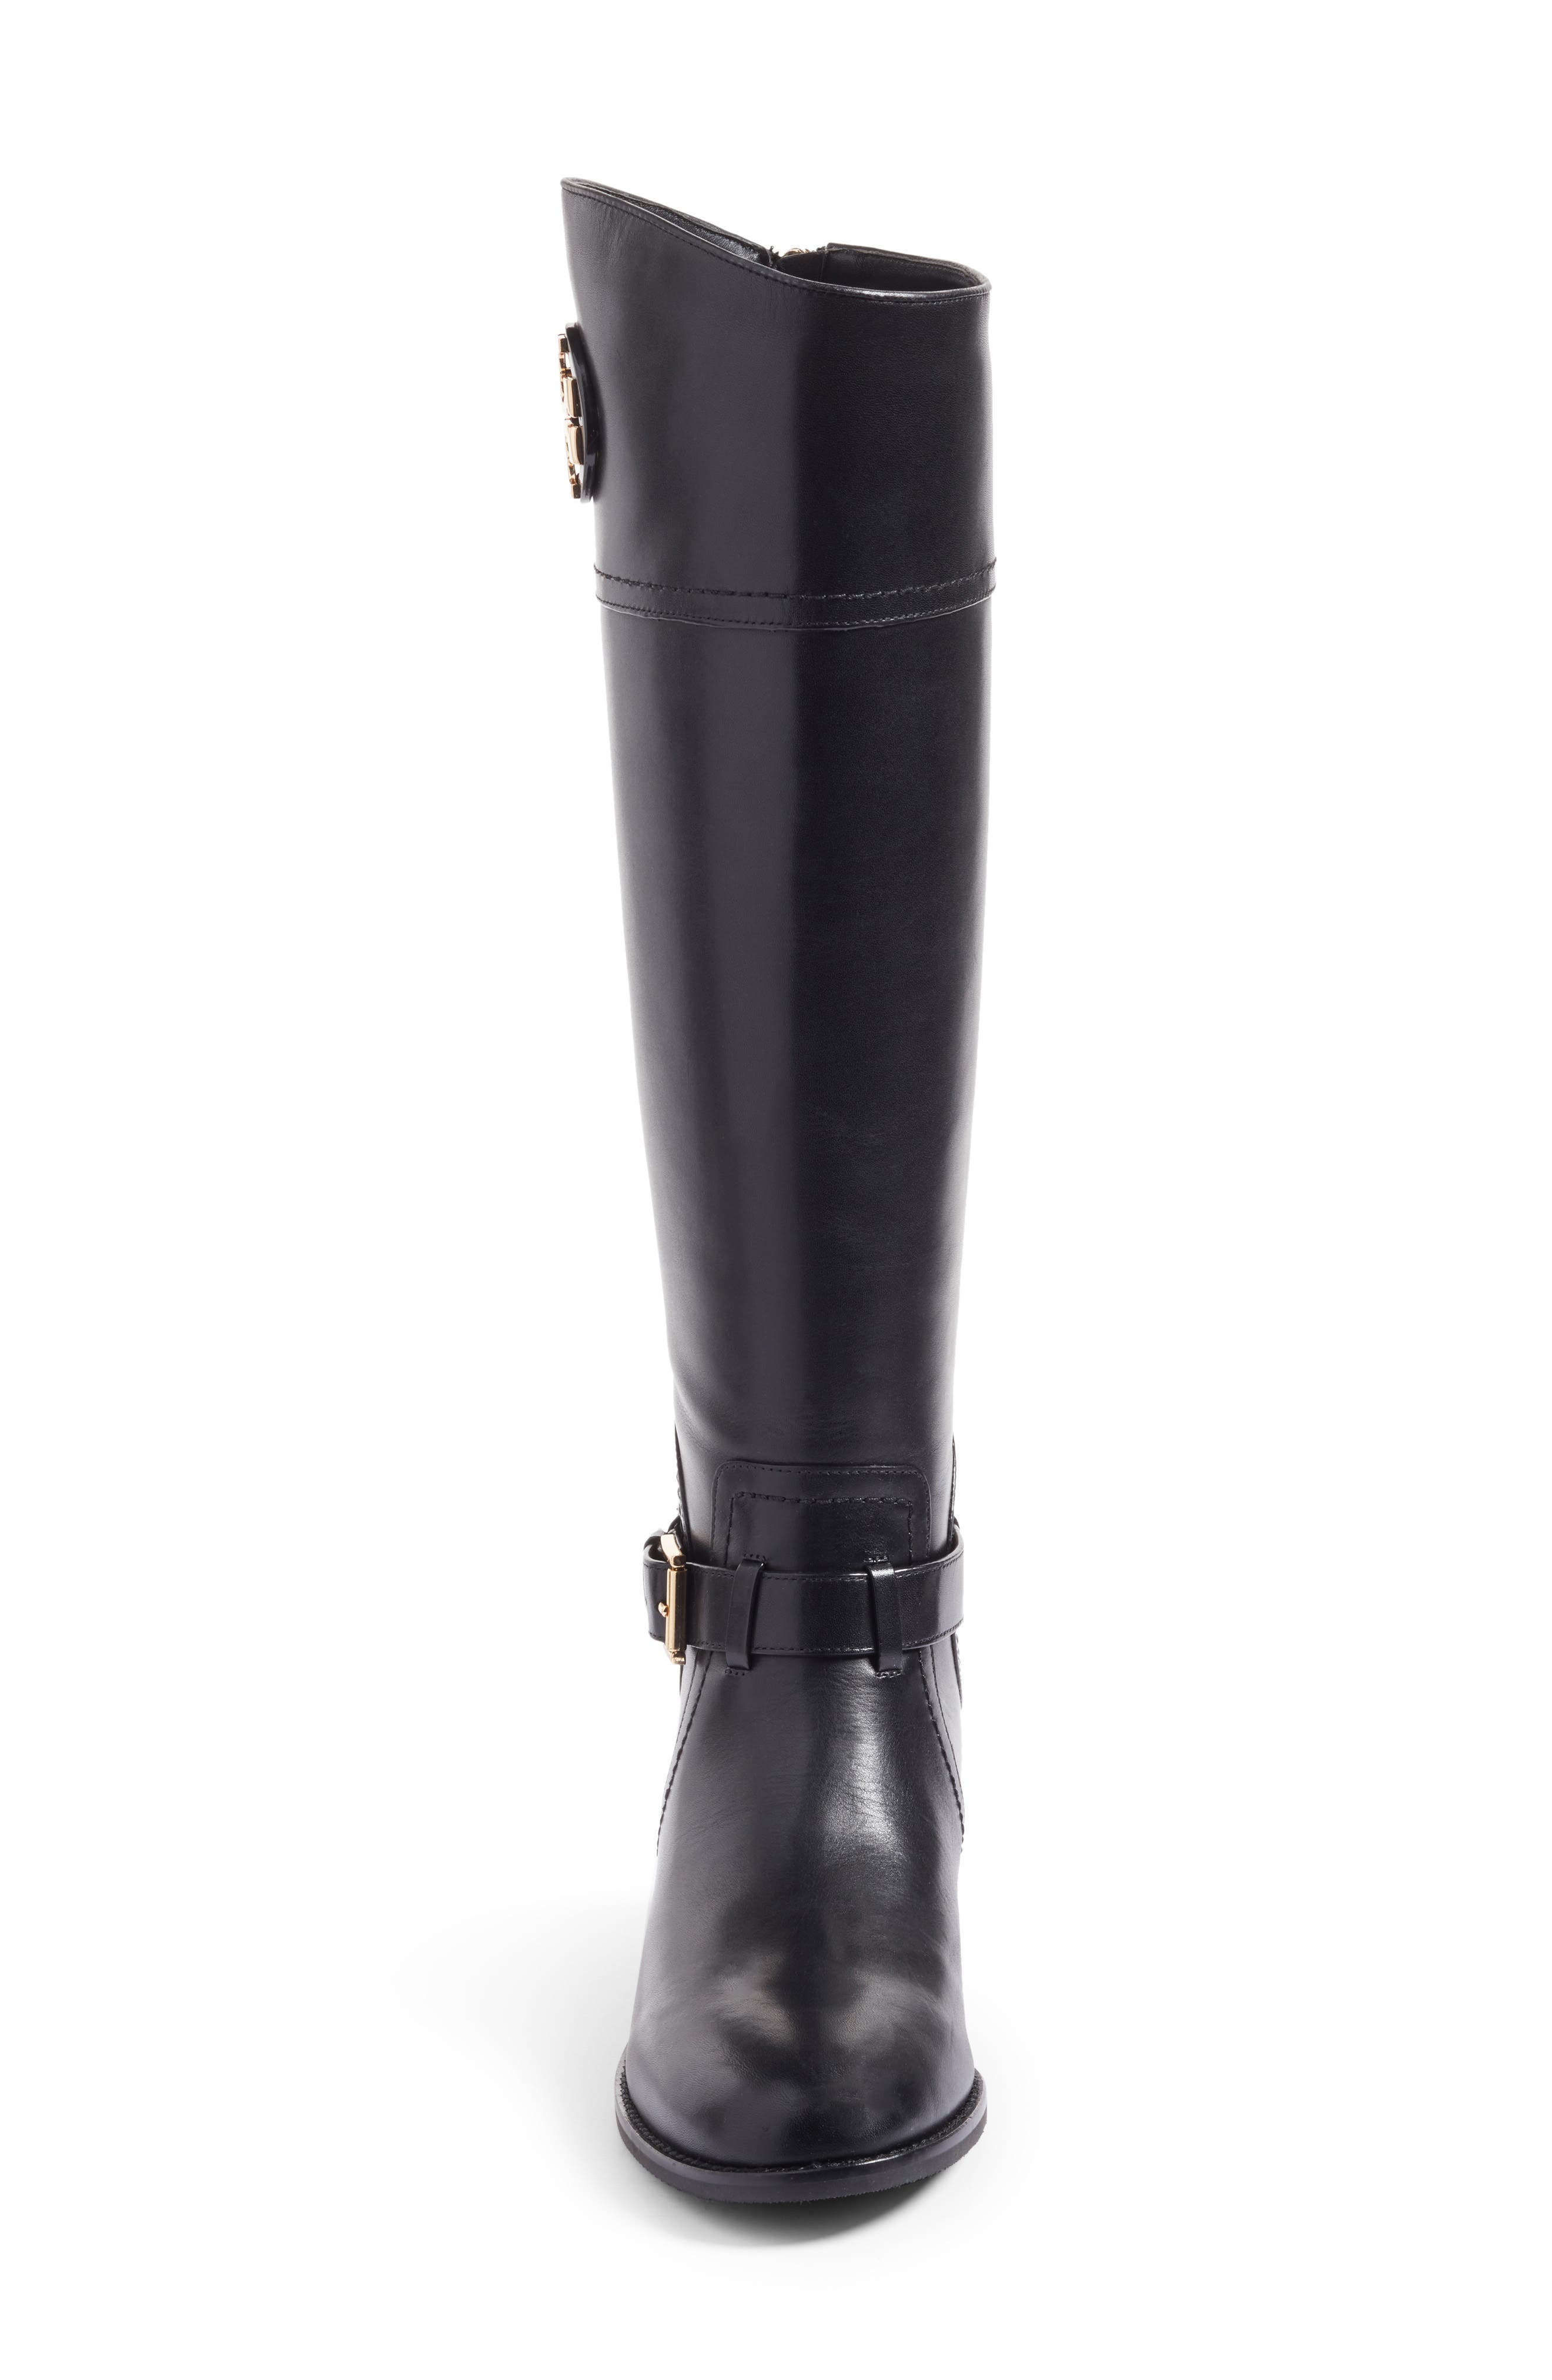 TORY BURCH, Adeline Boot, Alternate thumbnail 4, color, 001